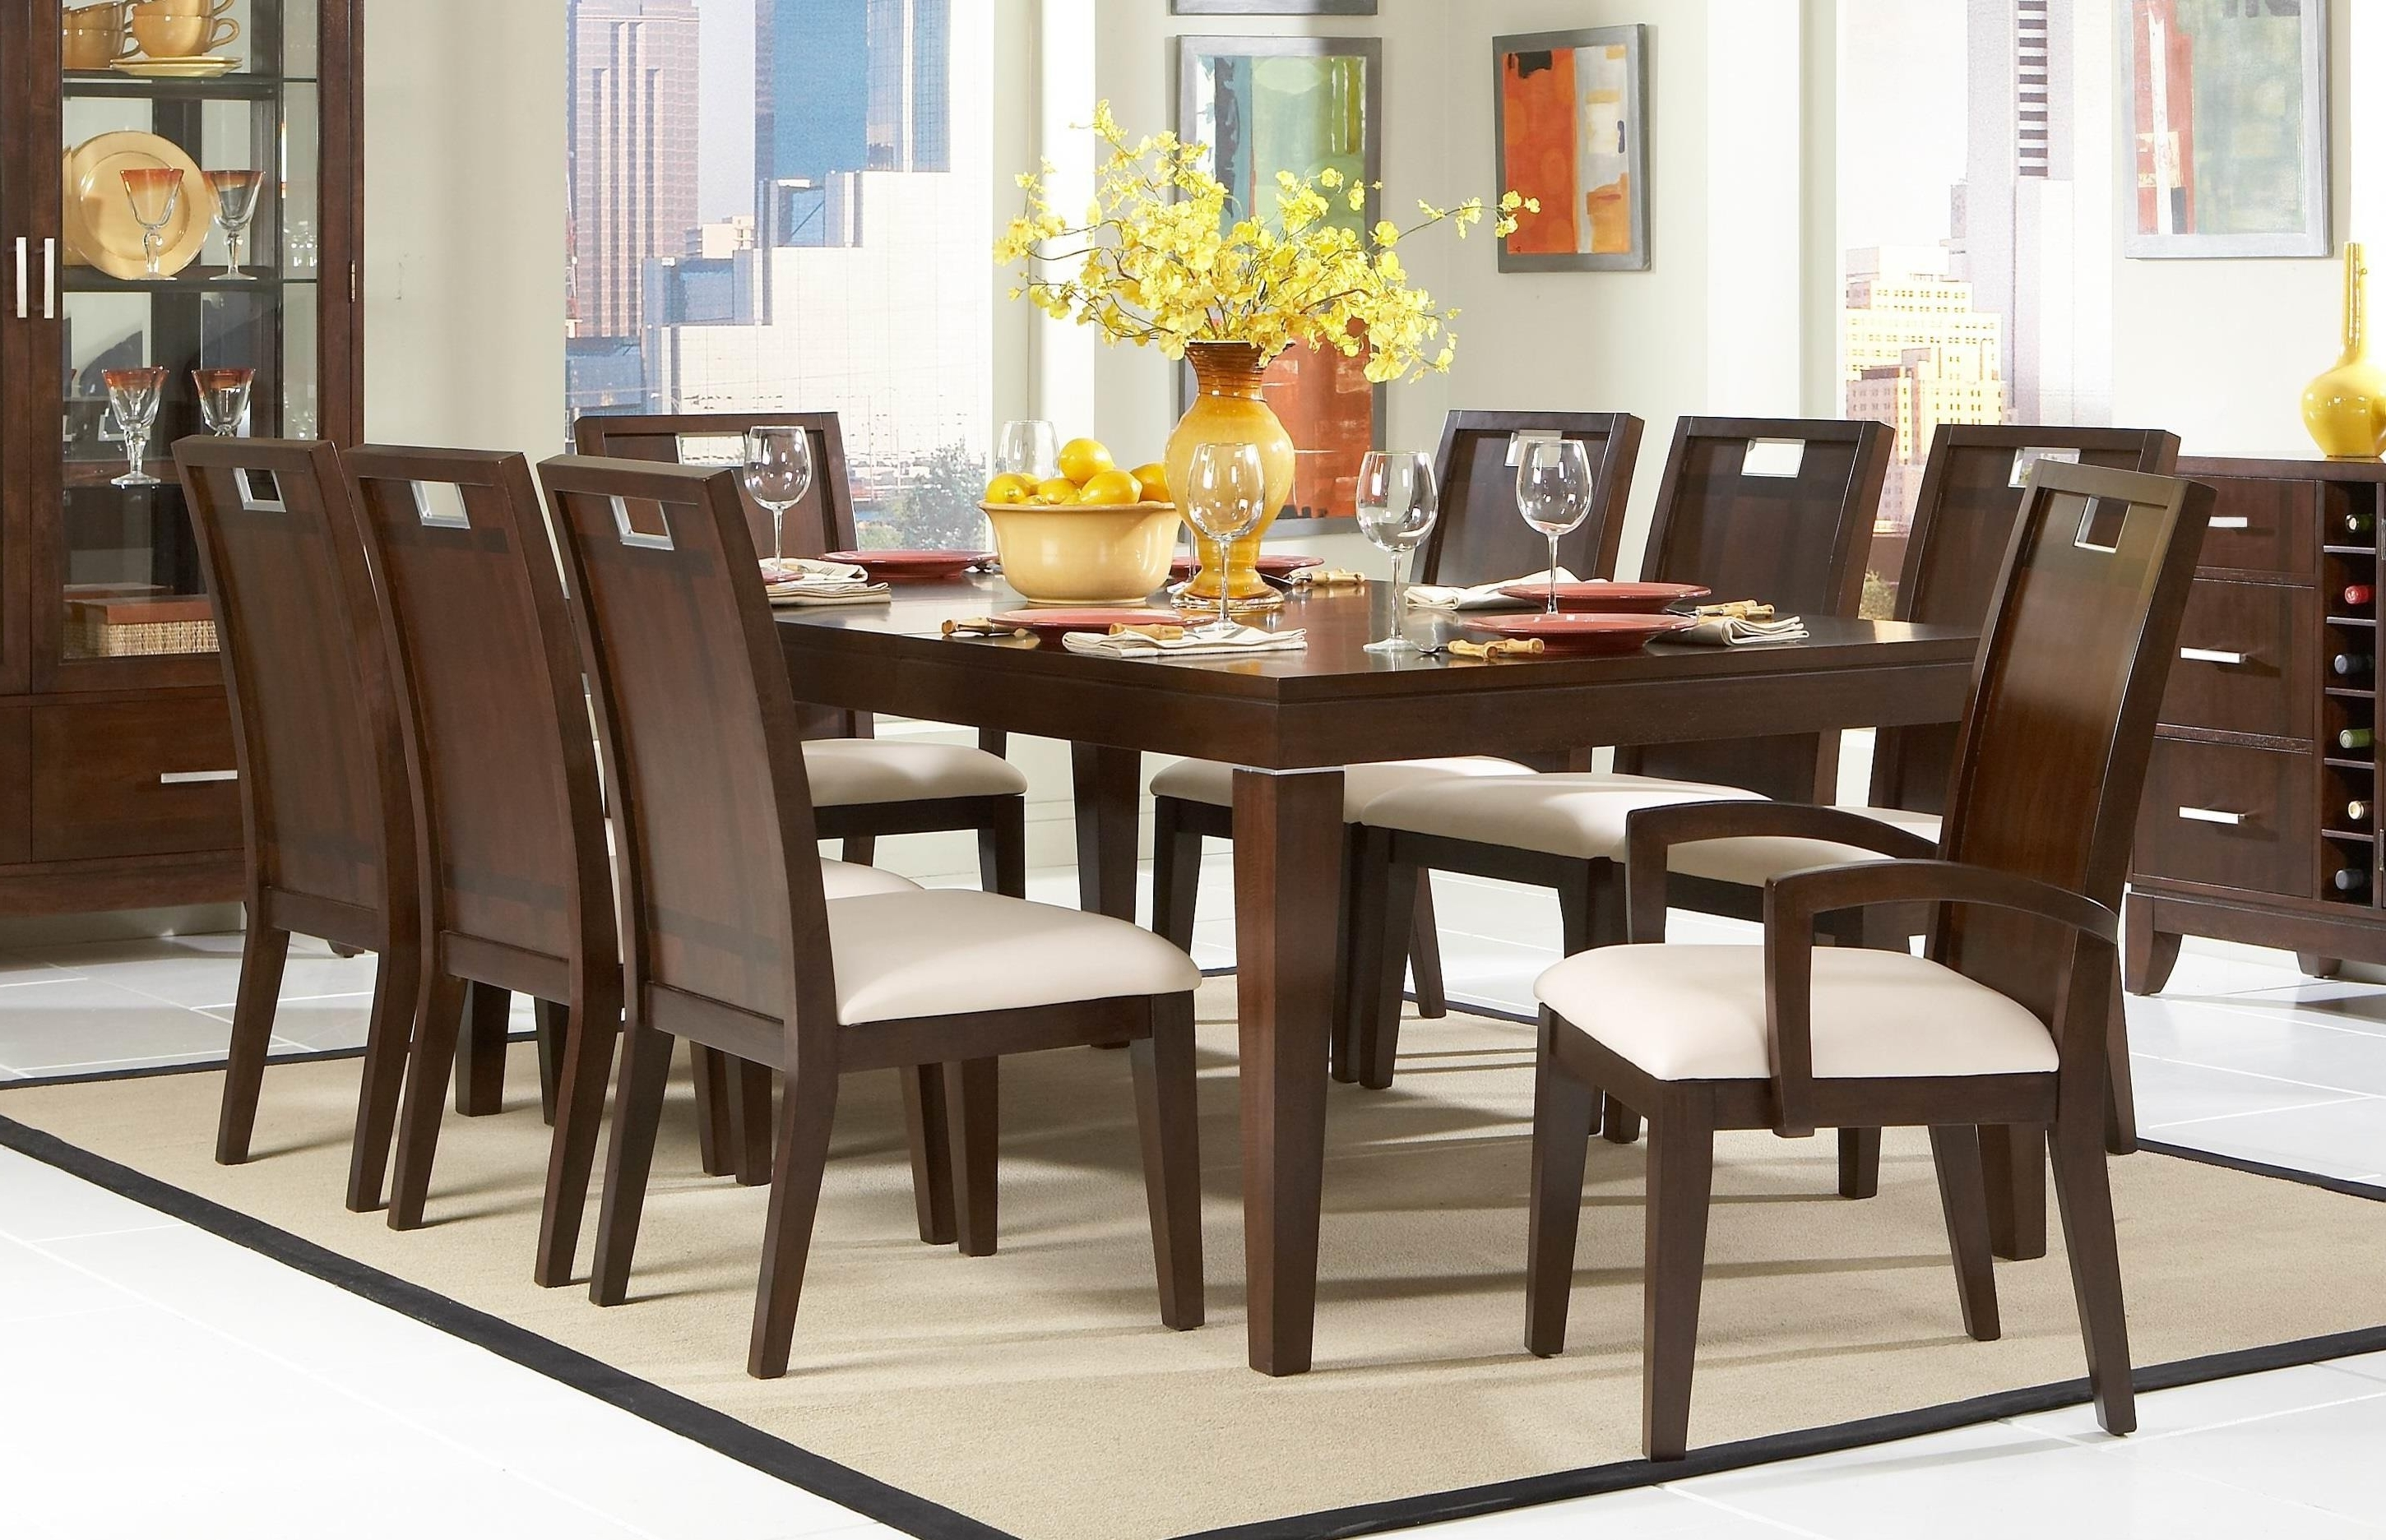 Widely Used 12 Foot Long Dining Table Inspirational Dazzling Solid Wood Dining With Regard To Long Dining Tables (View 9 of 25)